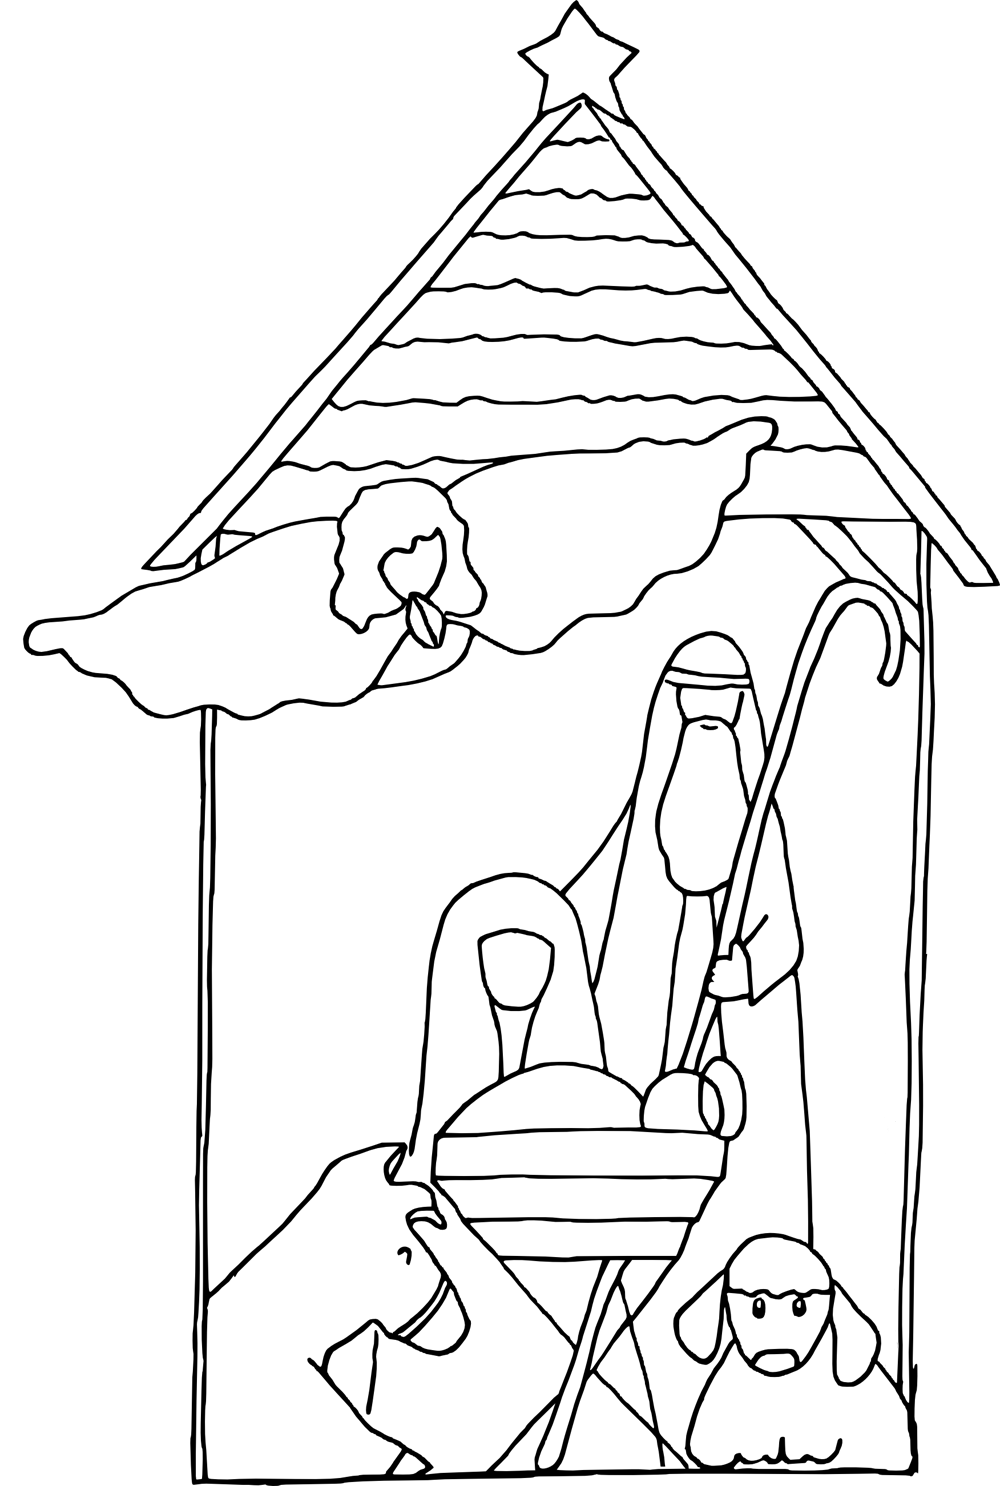 coloring pictures jesus praying hands coloring pages at getcoloringscom free jesus pictures coloring